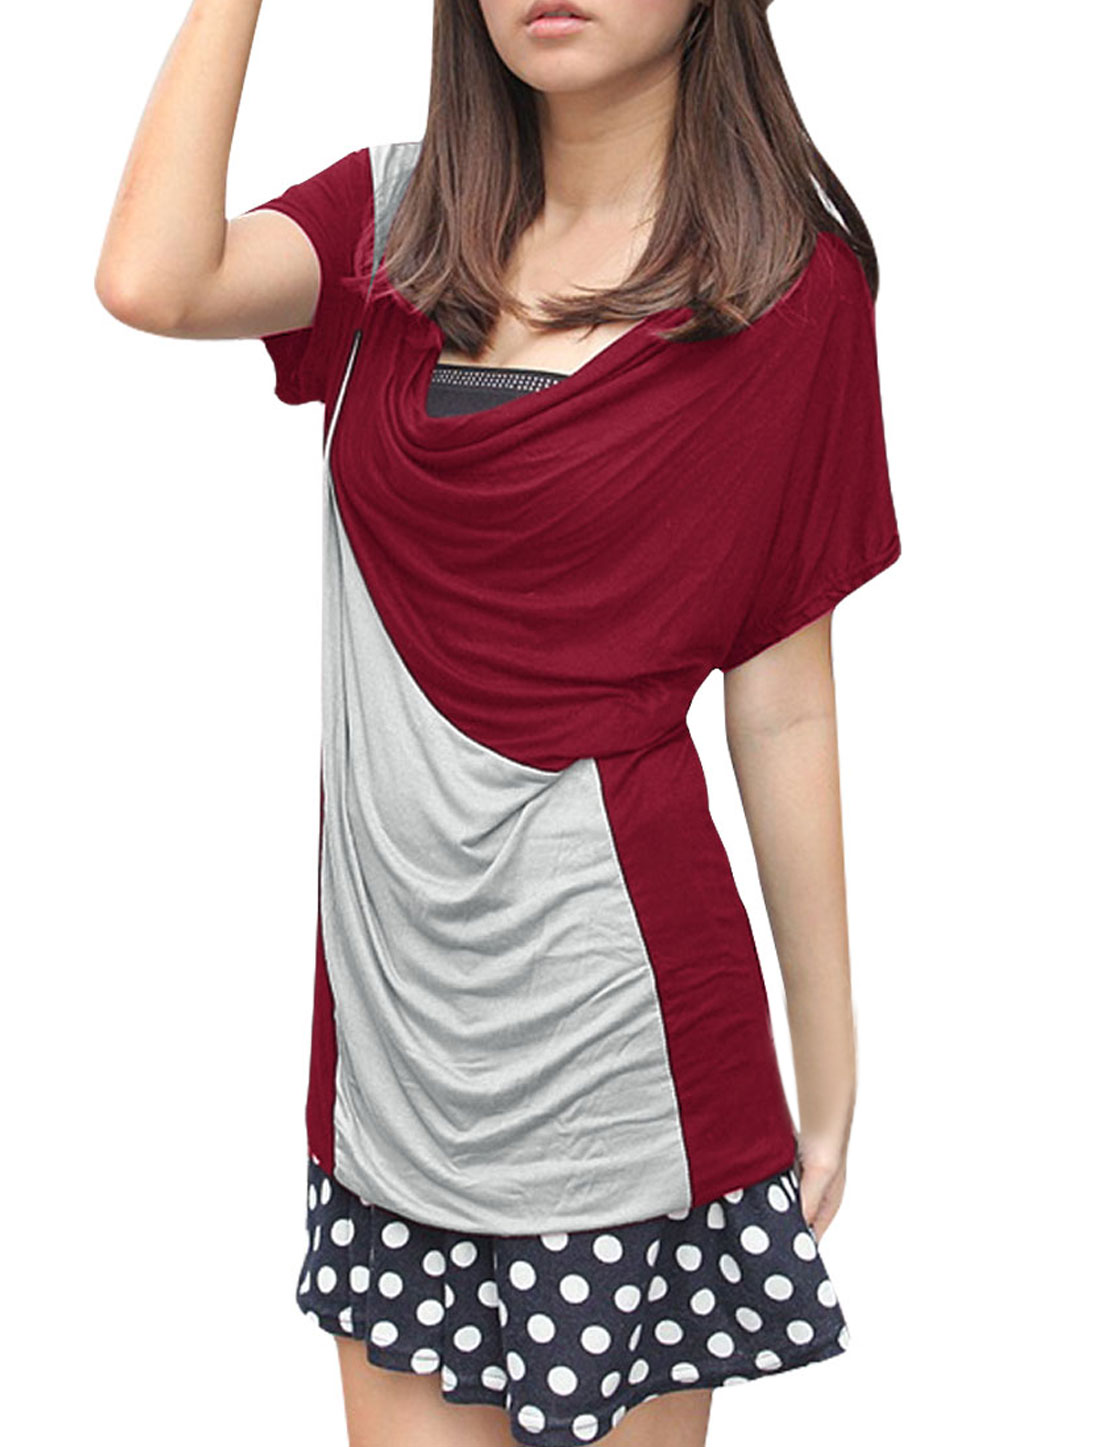 Women Cowl Neck Batwing Sleeves Contrast Color Top Red S